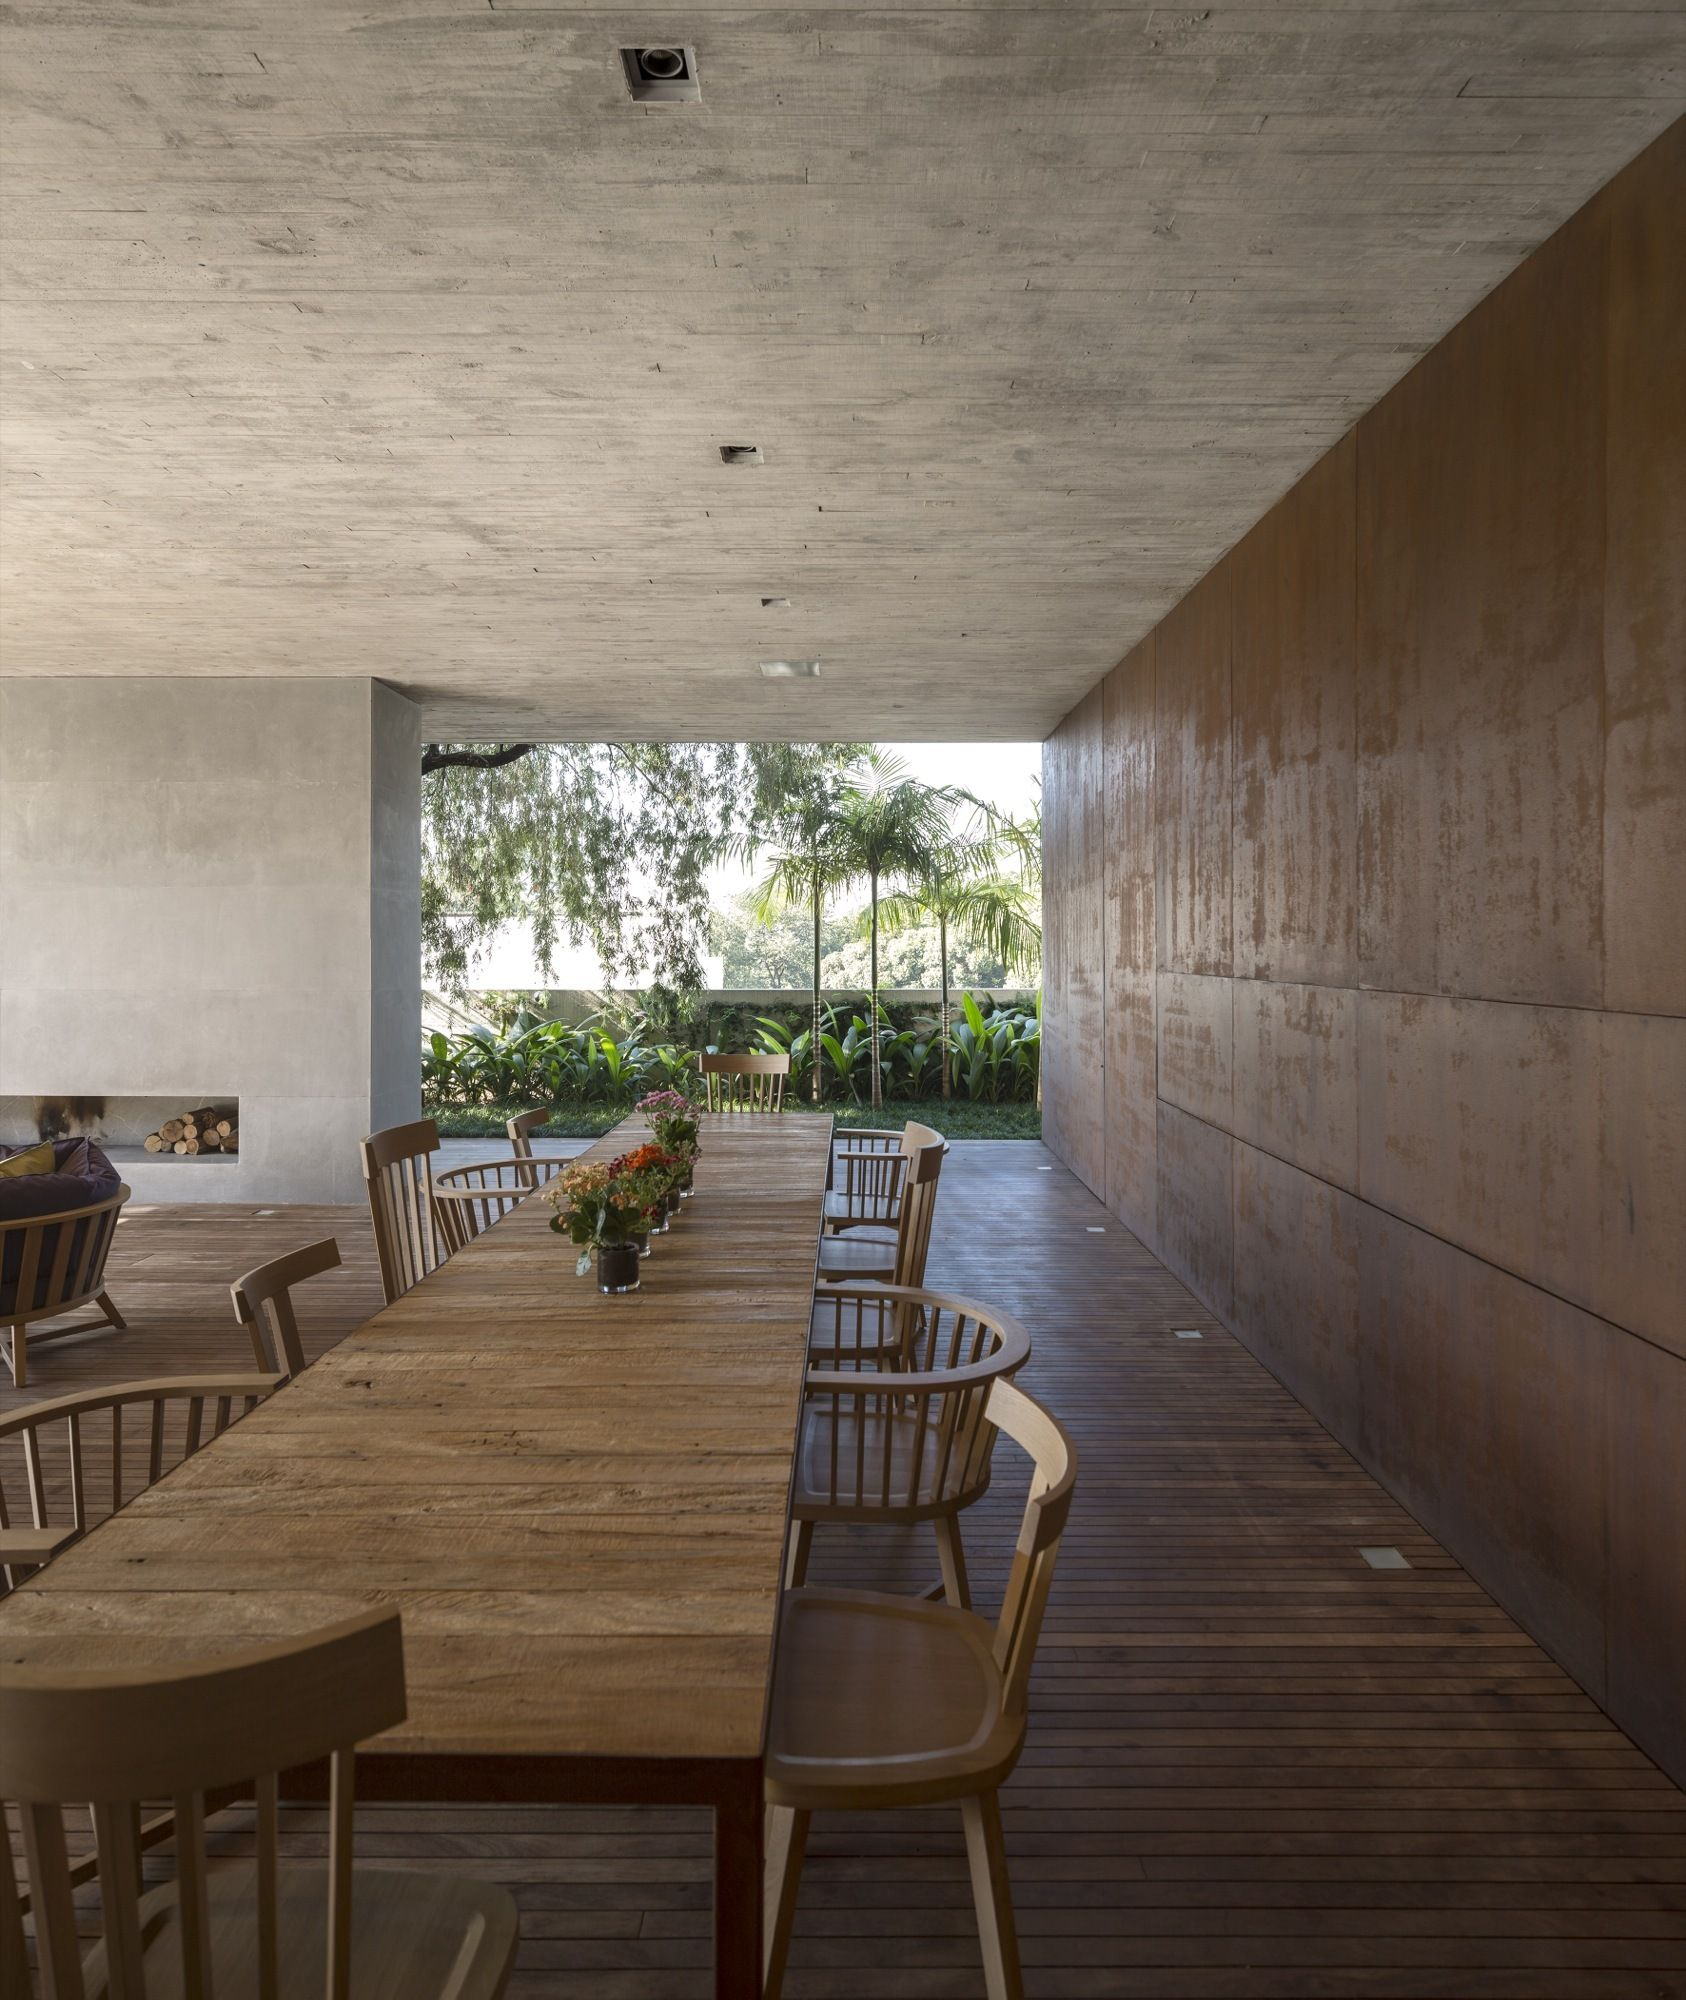 The P House / Studio MK27 - Marcio Kogan + Lair Reis